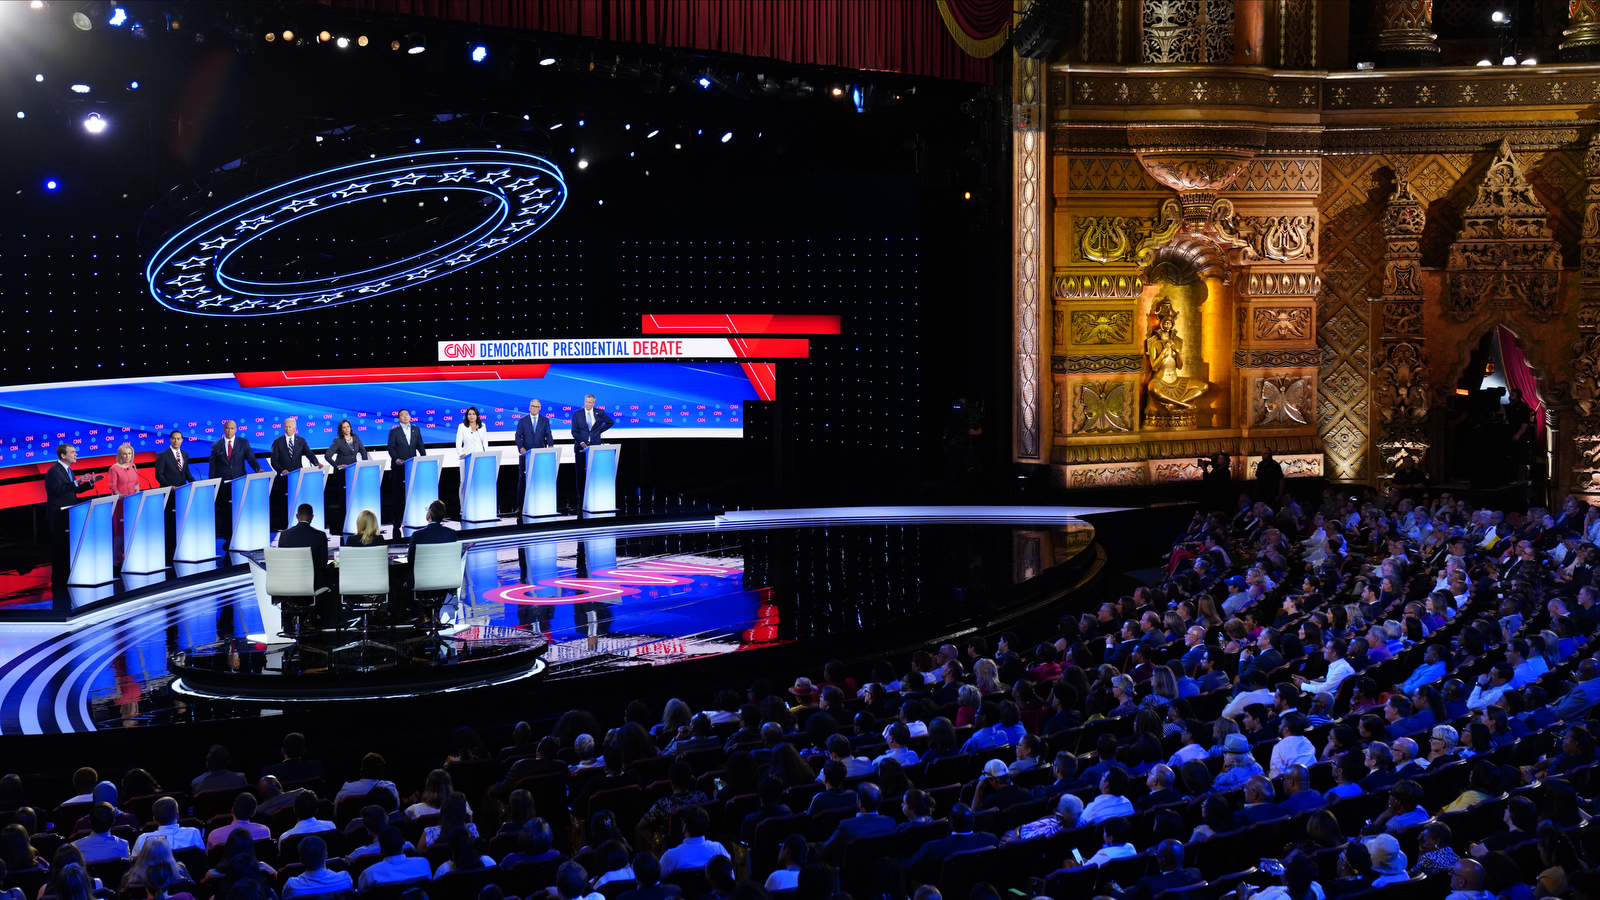 NCS_CNN-Democratic-Debate_Stage-Design-2019_0013